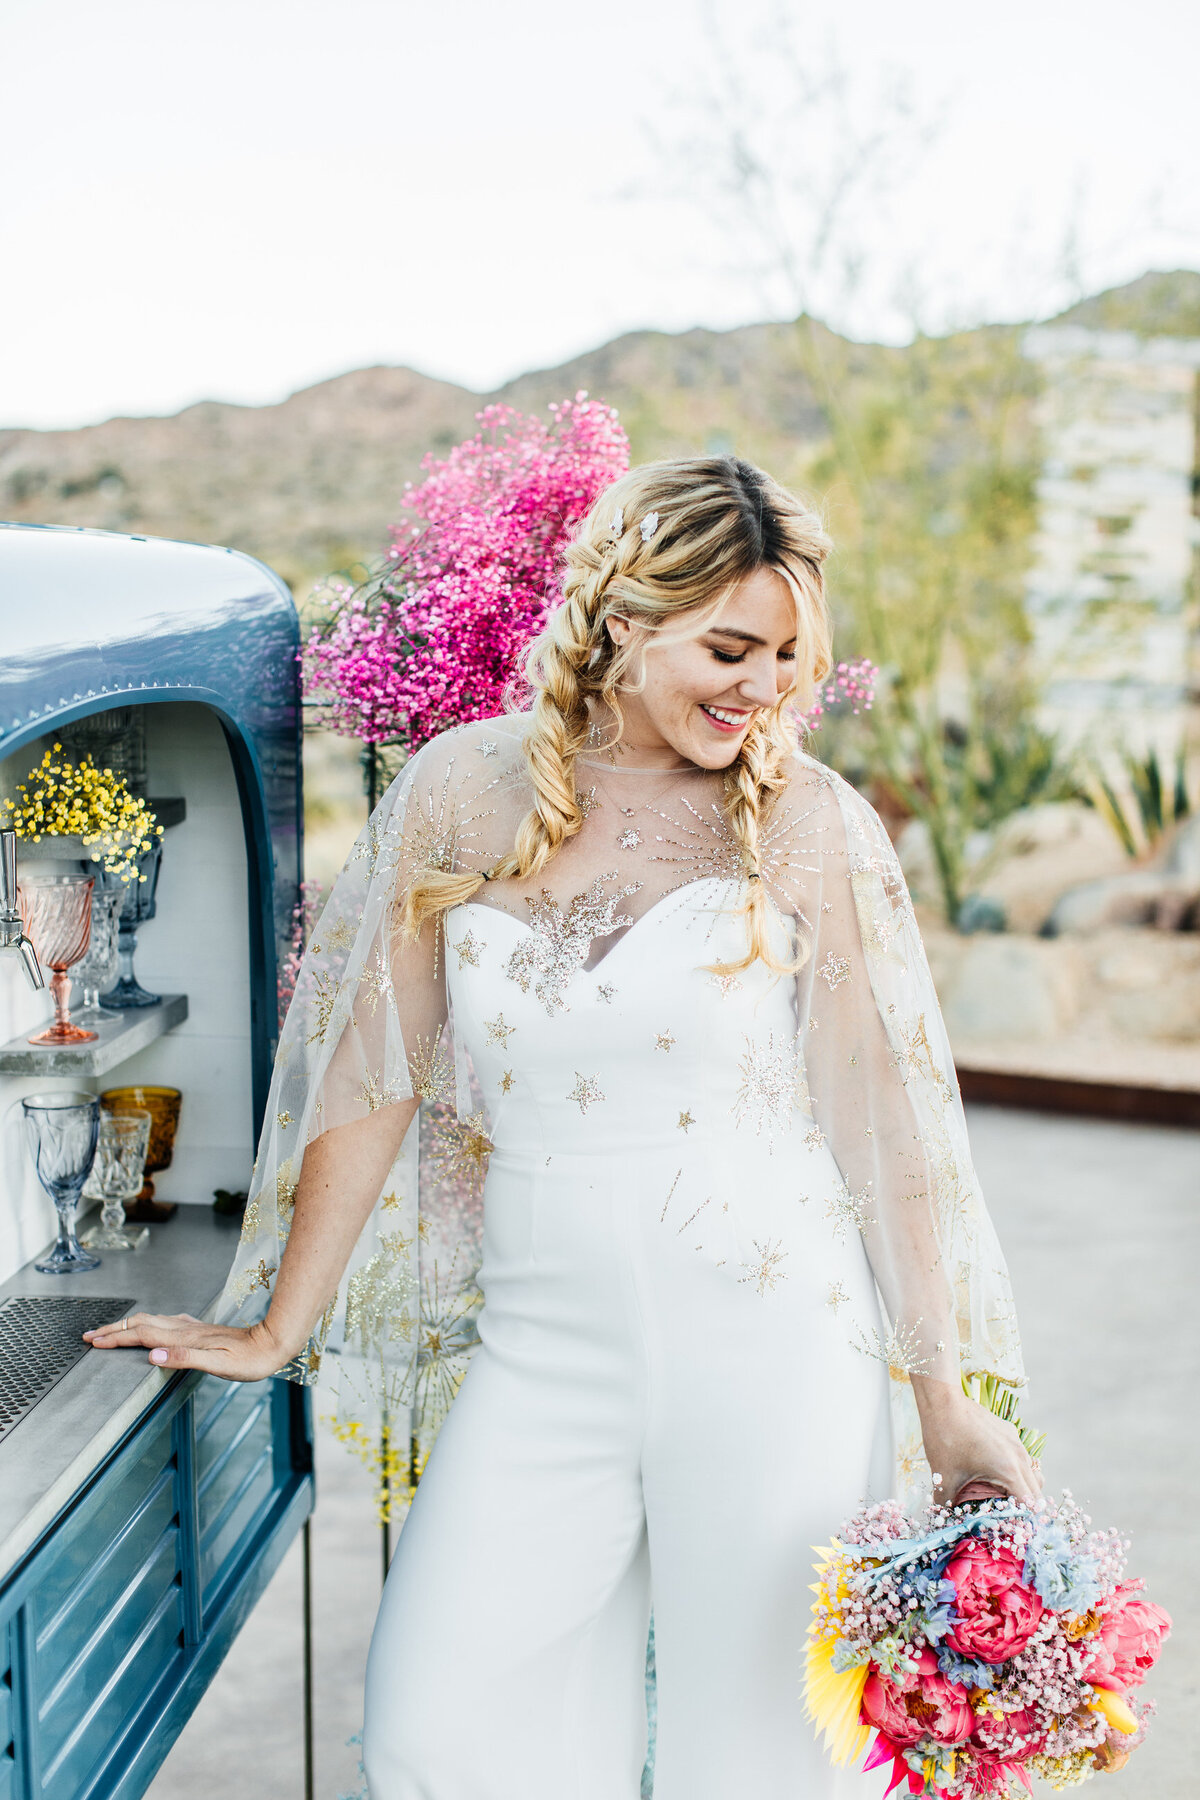 colorful-joshua-tree-elopement-inspiration-joshua-tree-wedding-photographer-palm-springs-wedding-photographer-erin-marton-photography-47